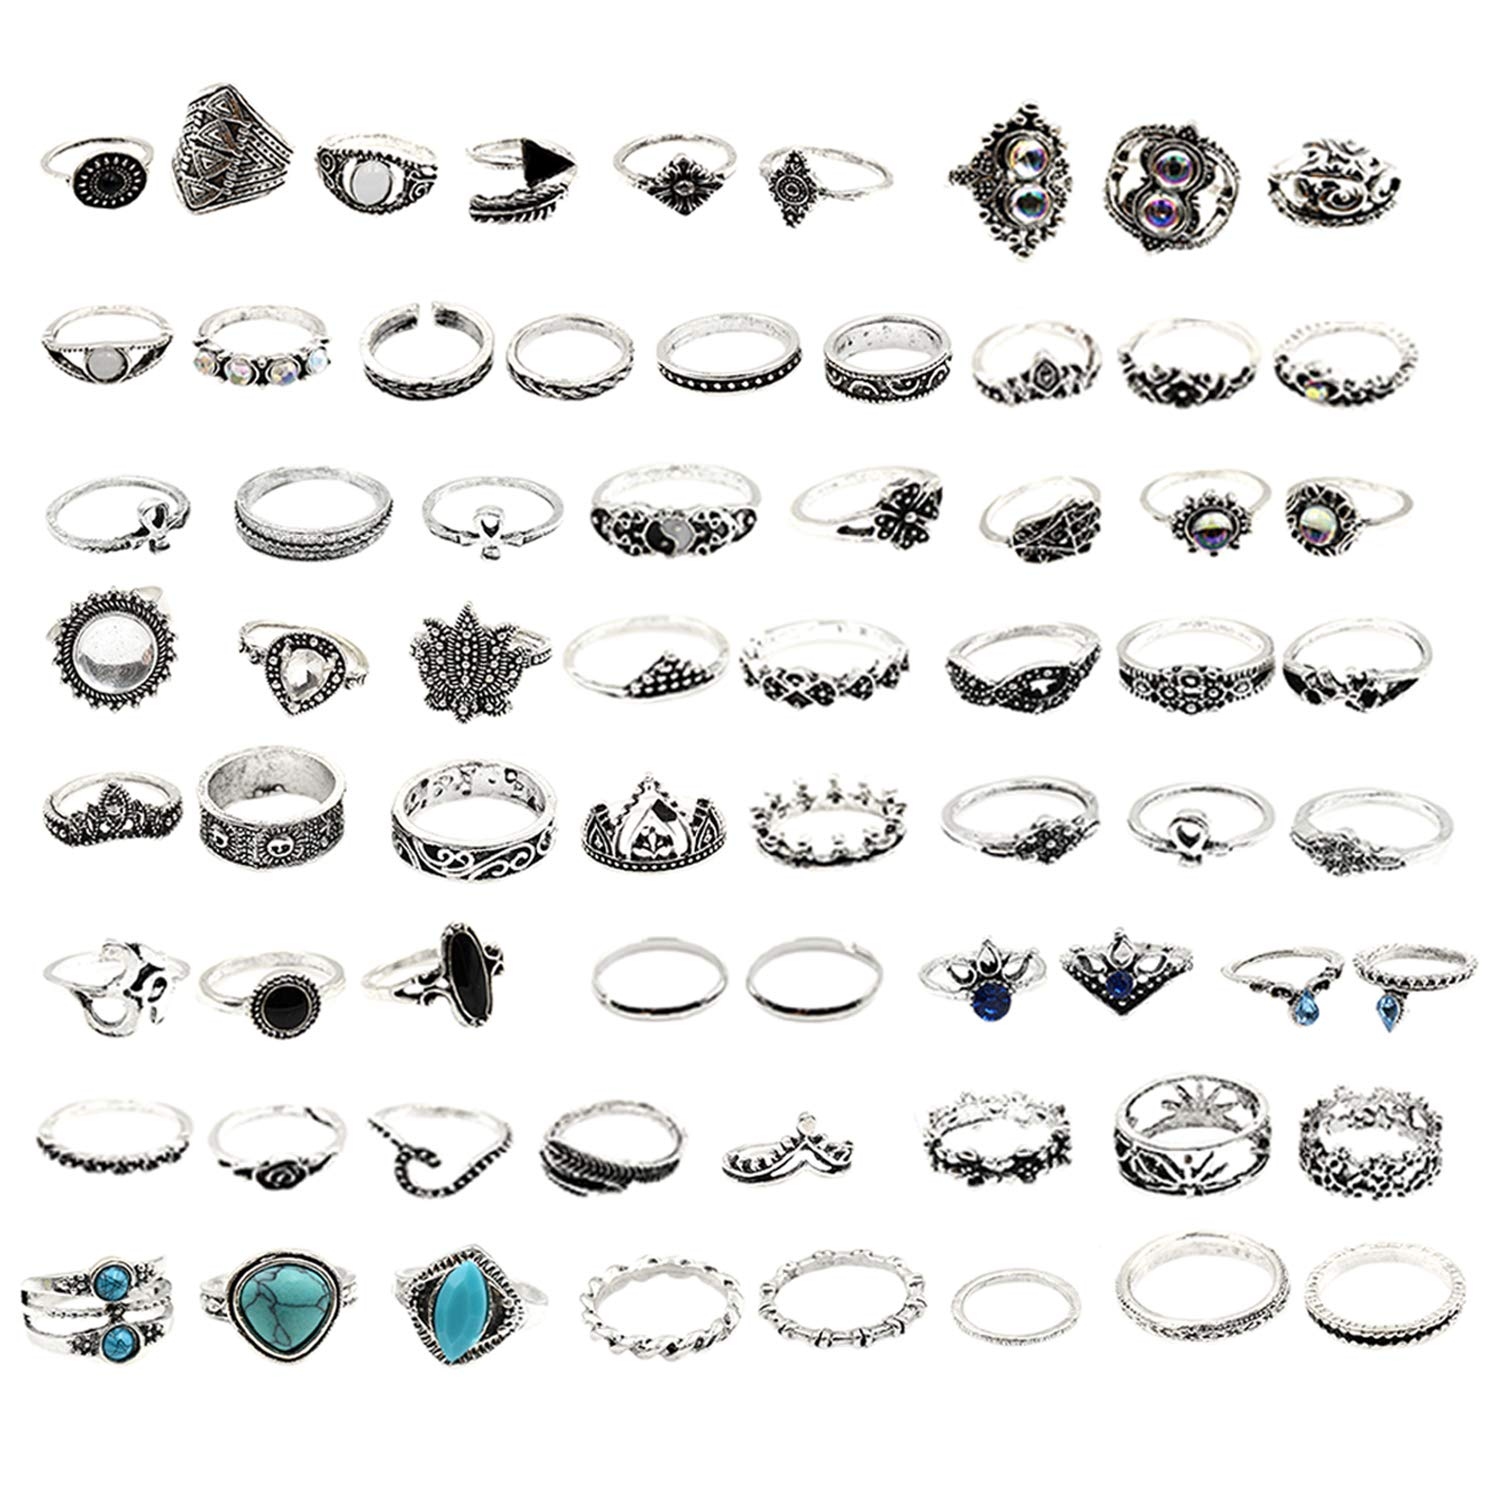 Xgood 66 Pcs Vintage Knuckle Ring Mid Rings Set Stackable Rings Set Finger Rings for Women Girls Children Teenagers Decorations Gifts by Xgood